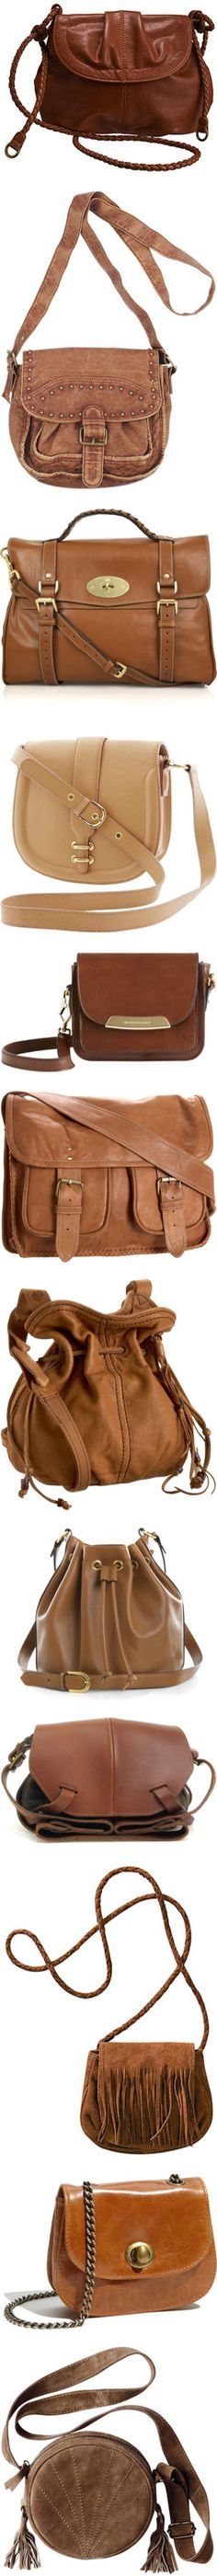 """satchels and other bags..."" by diana1990 ❤ liked on Polyvore"